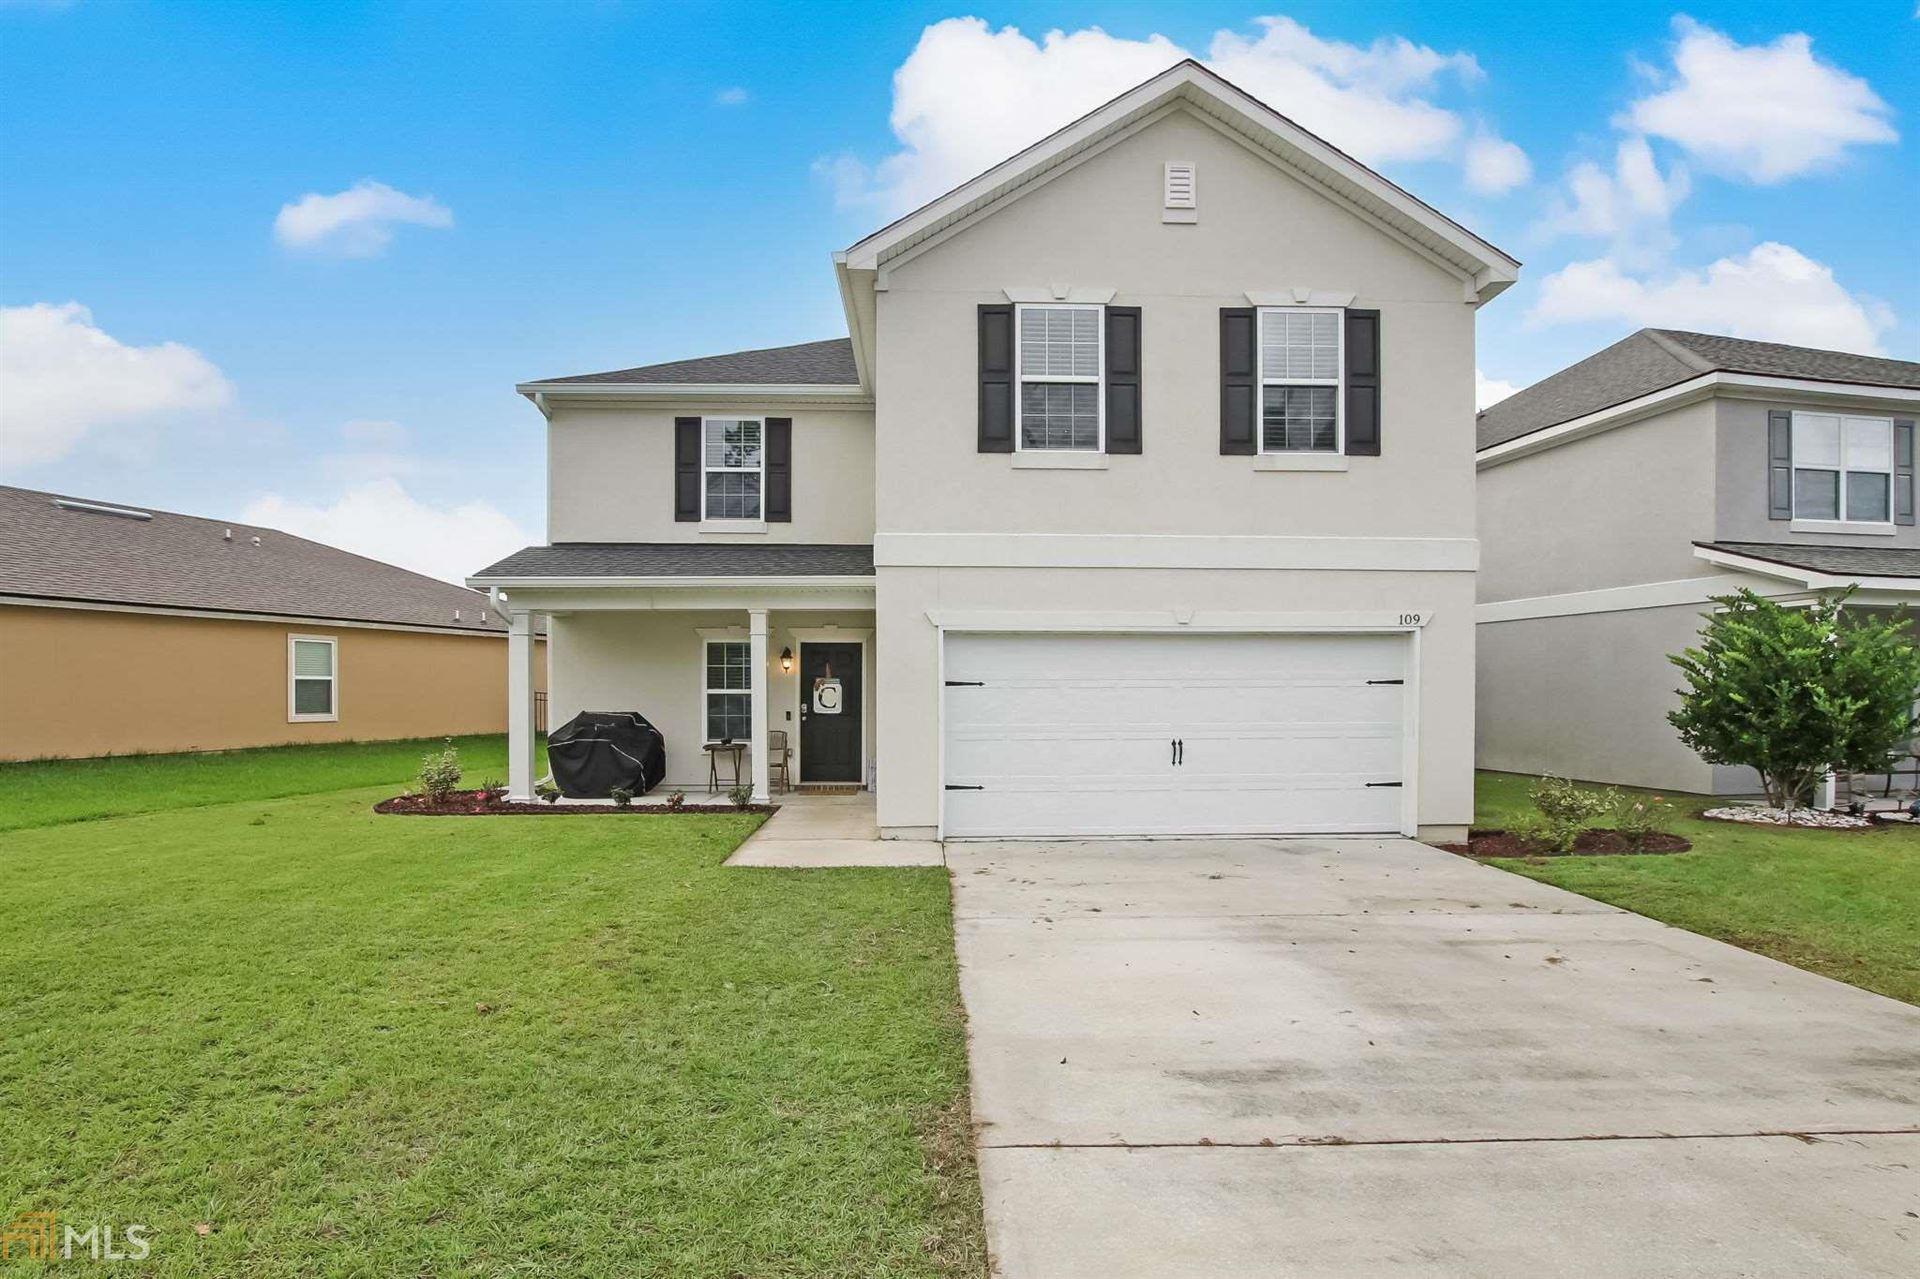 109 Brooklet Cir, Saint Marys, GA 31558 - MLS#: 8910216